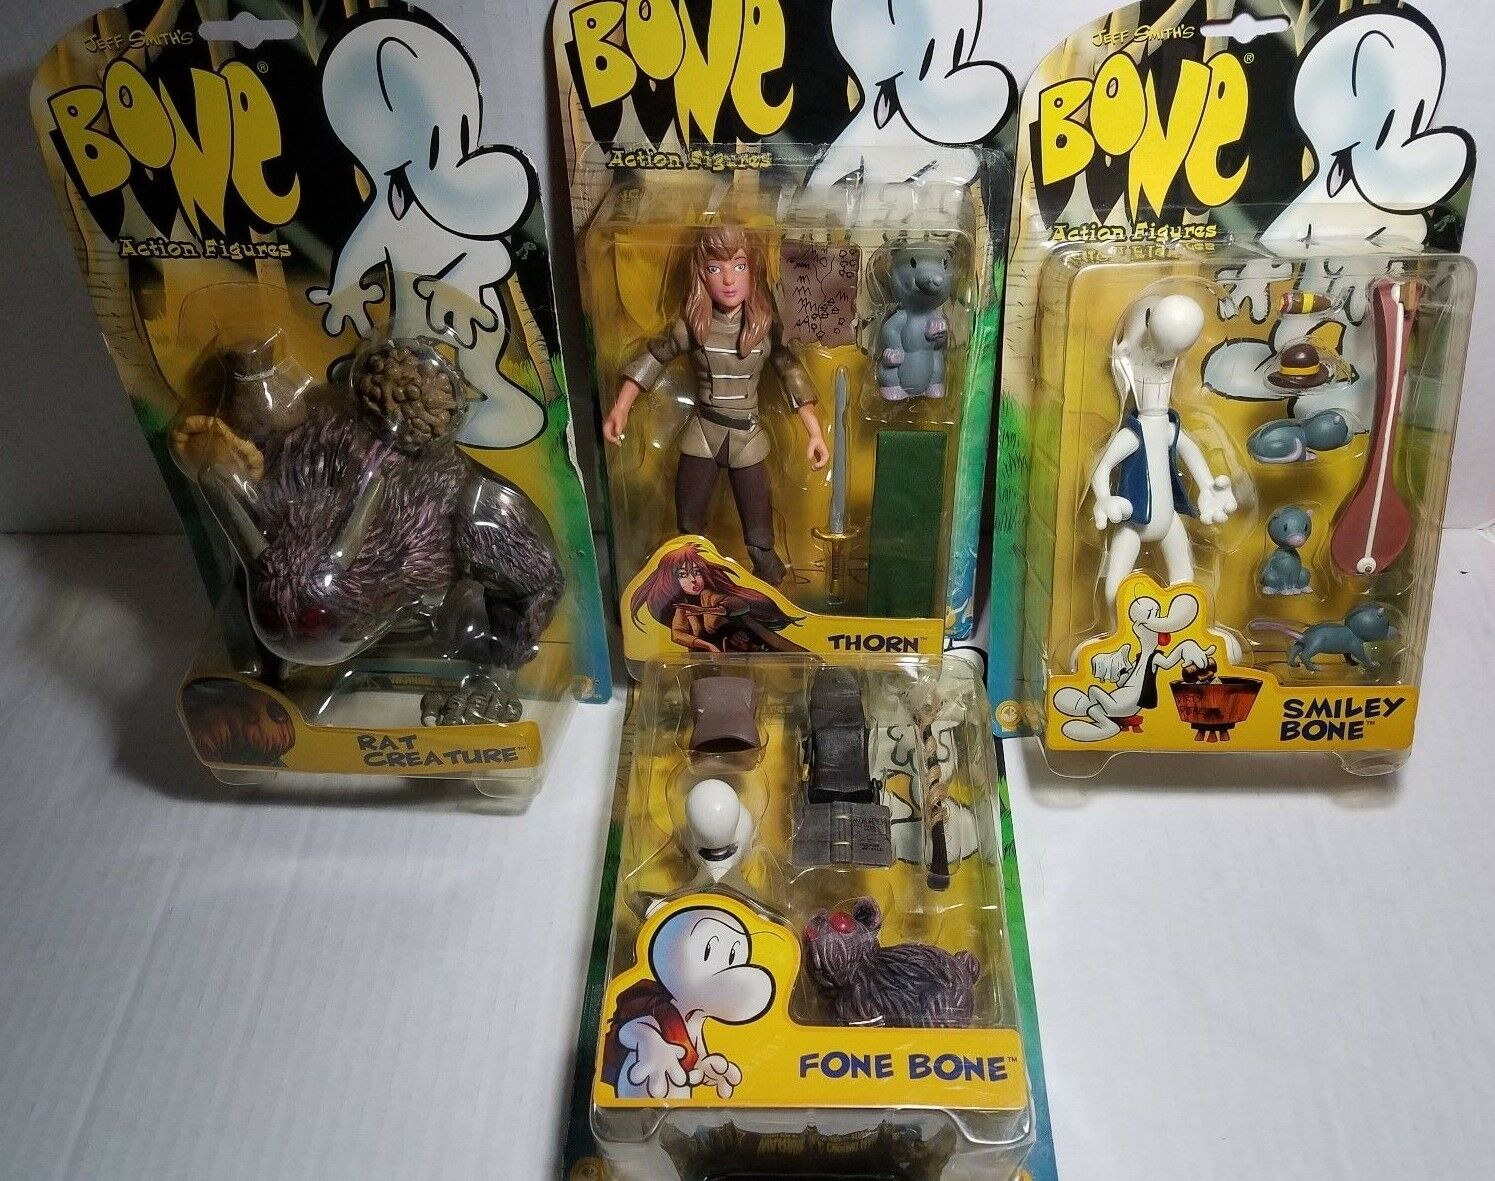 1996 OS  figurines Rat créature, Thorn, Smiley os, Fone Bone Jeff Smith  derniers styles